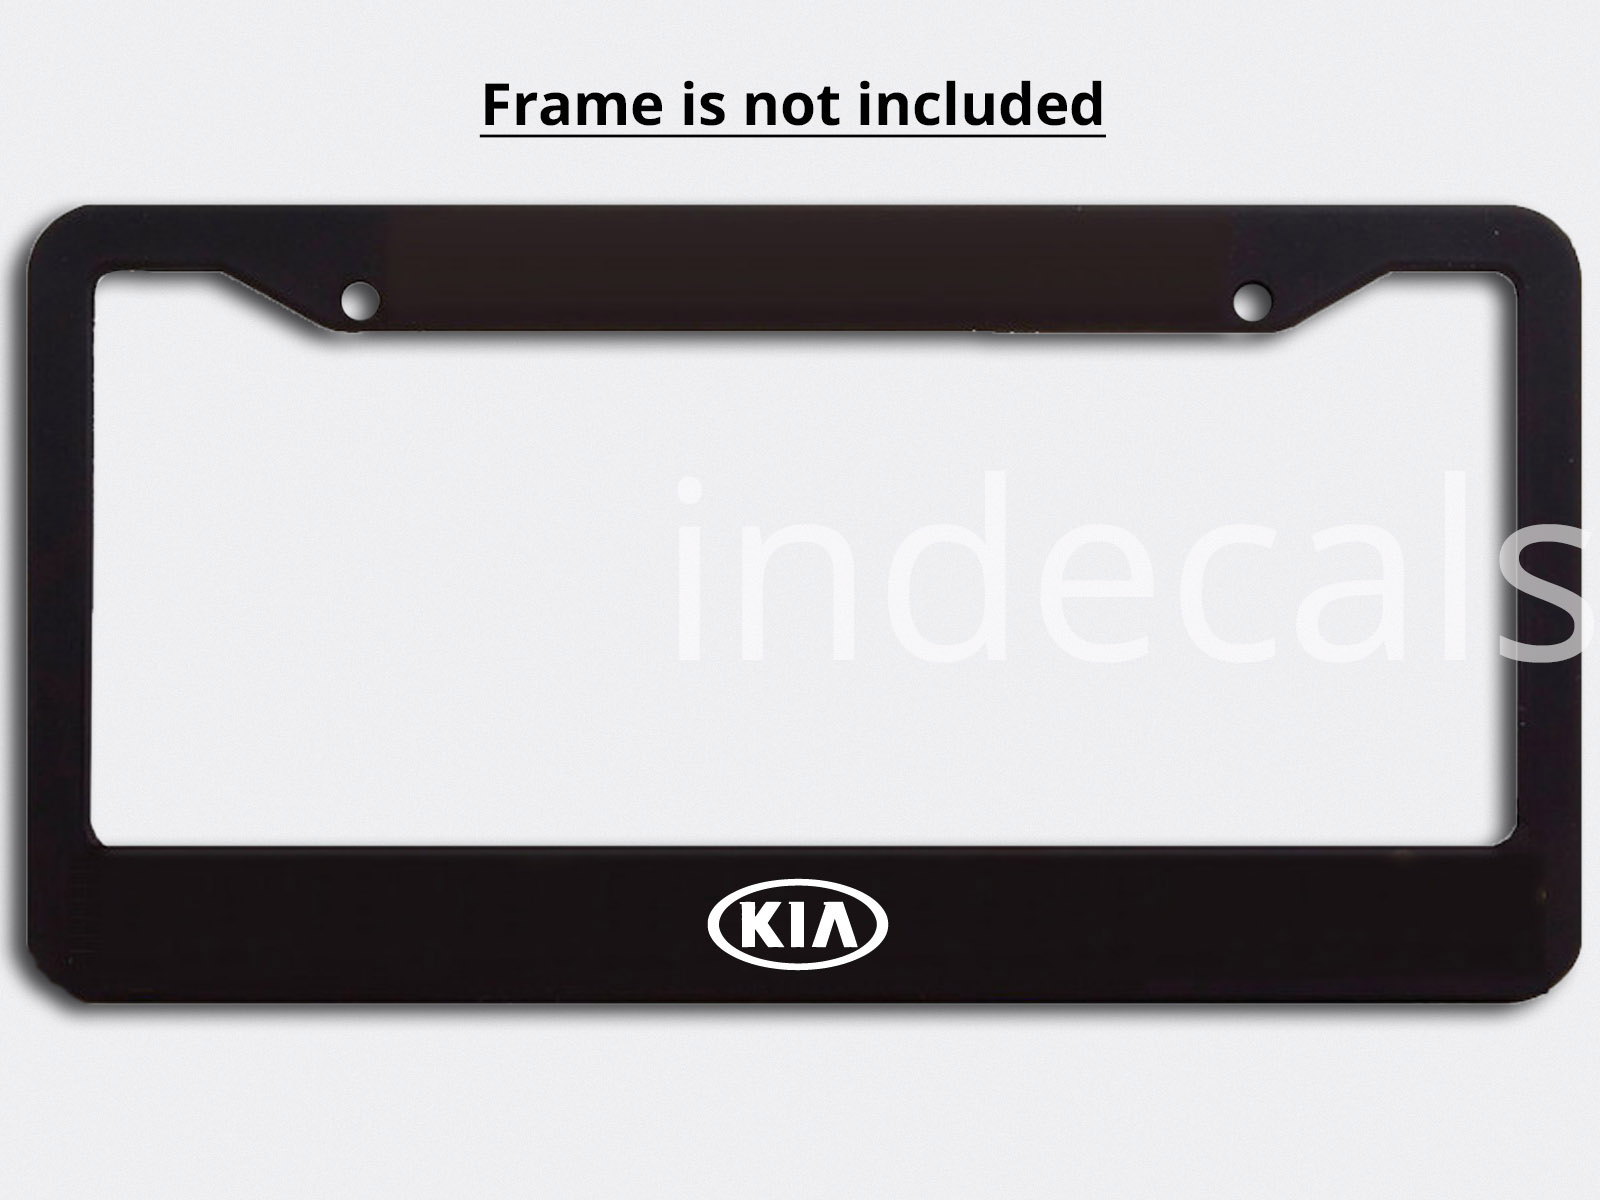 3 x KIA Stickers for License Plate Frame - White - indecals.com